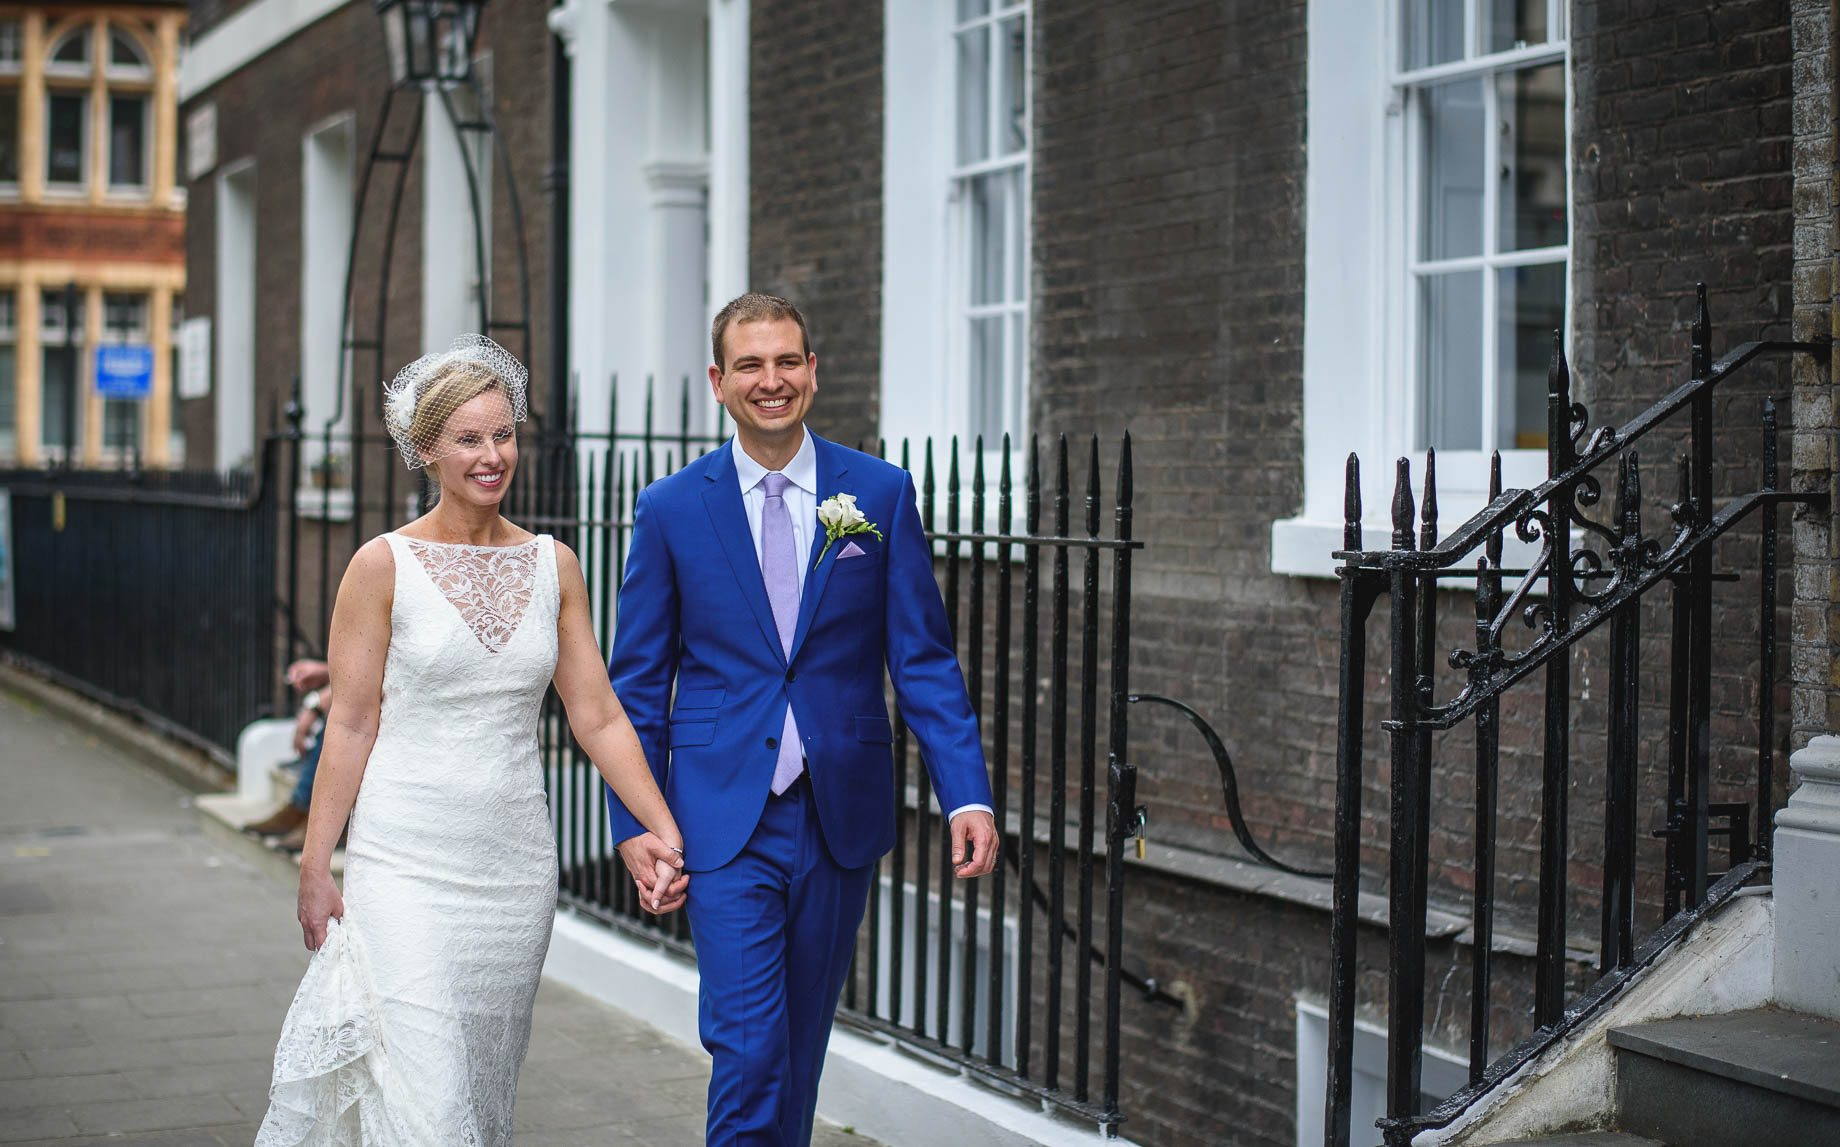 Bllomsbury House wedding photography in London - Katie and Taylor (75 of 156)